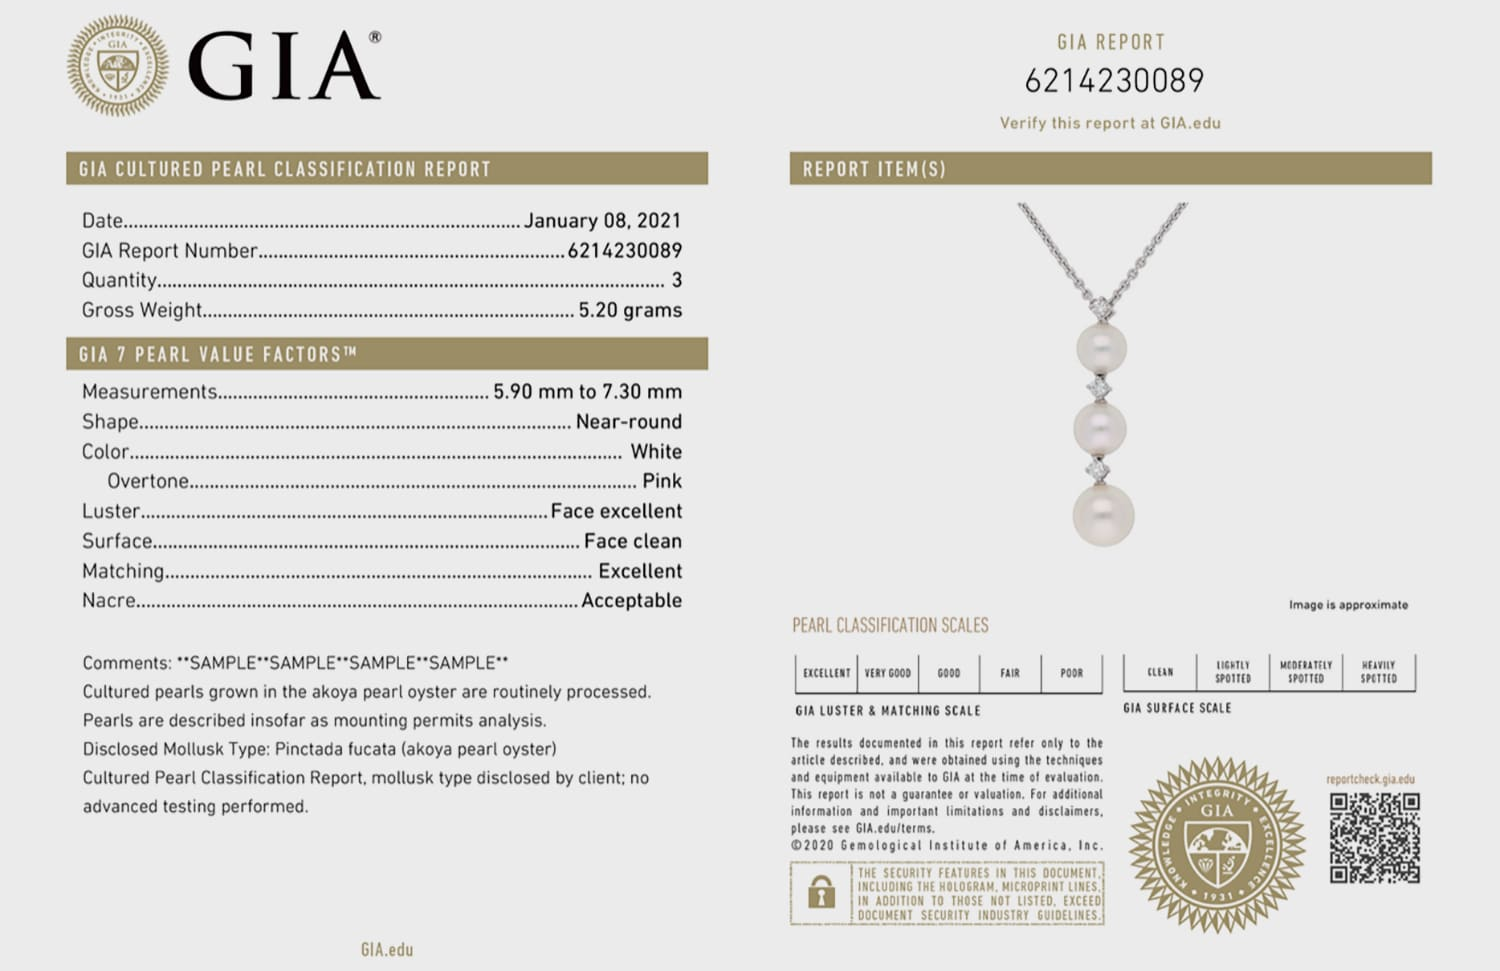 GIA Cultured Pearl Classification Report